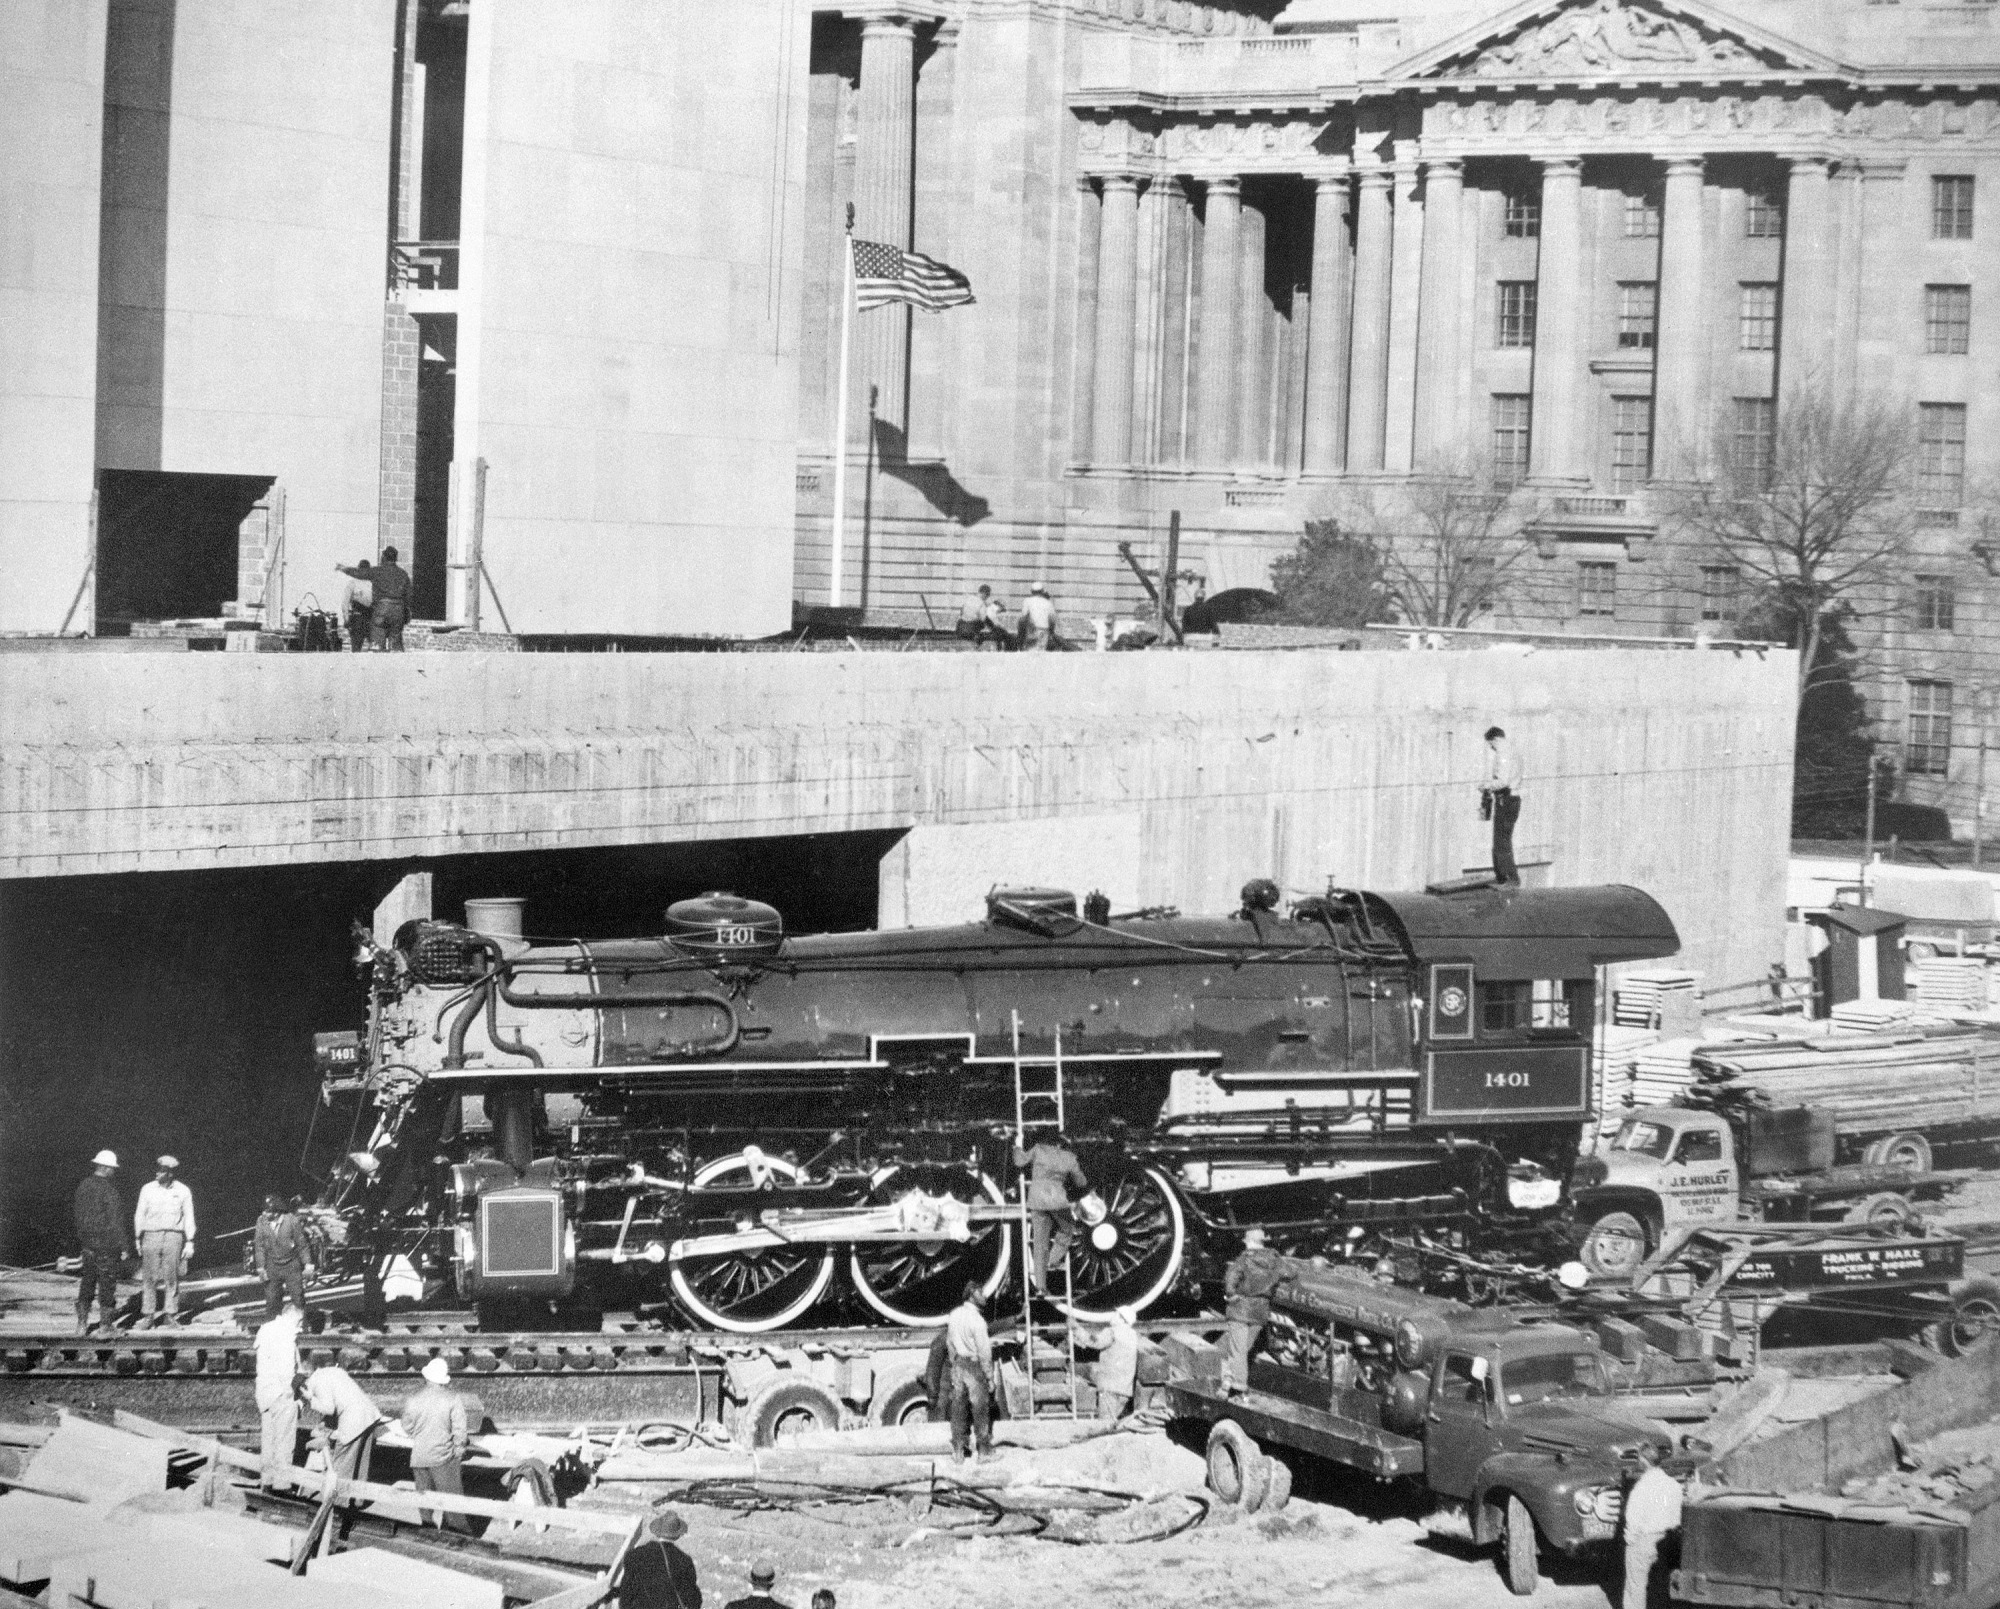 Installation of Steam Locomotive in NMHT